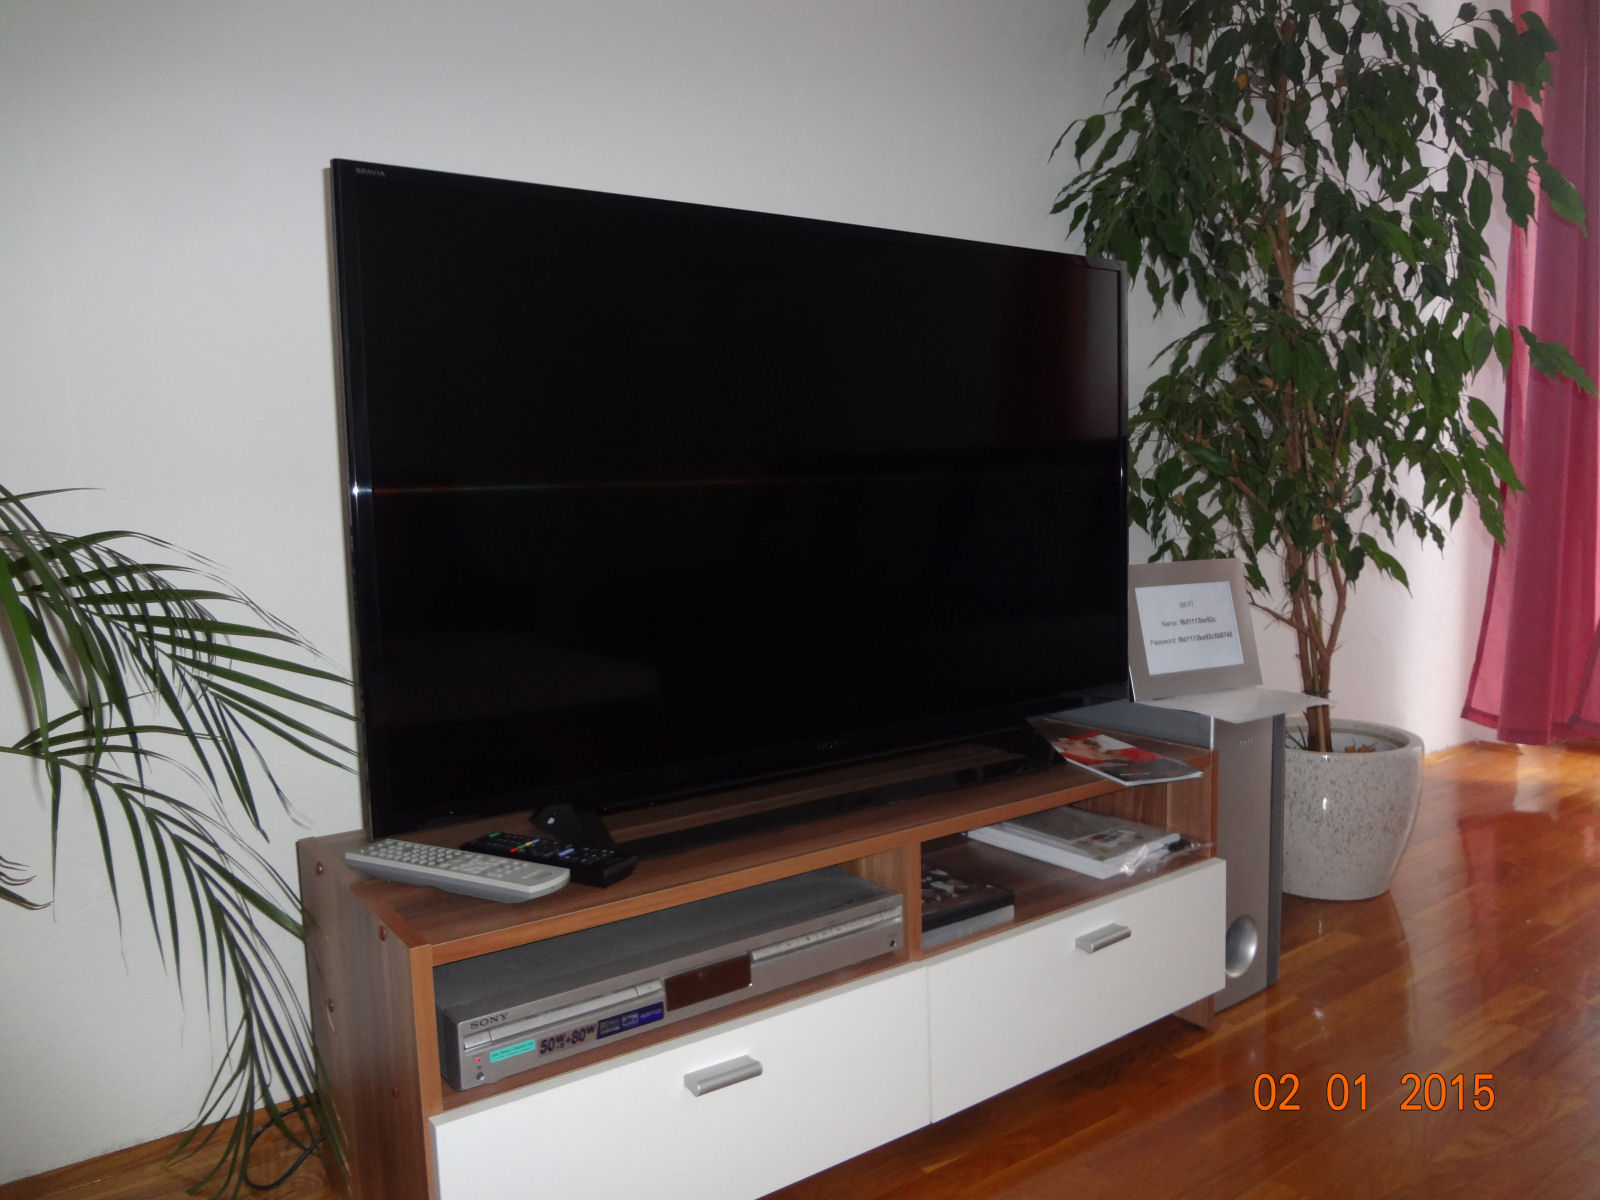 A new LCD TV in the Fine Stay apartment